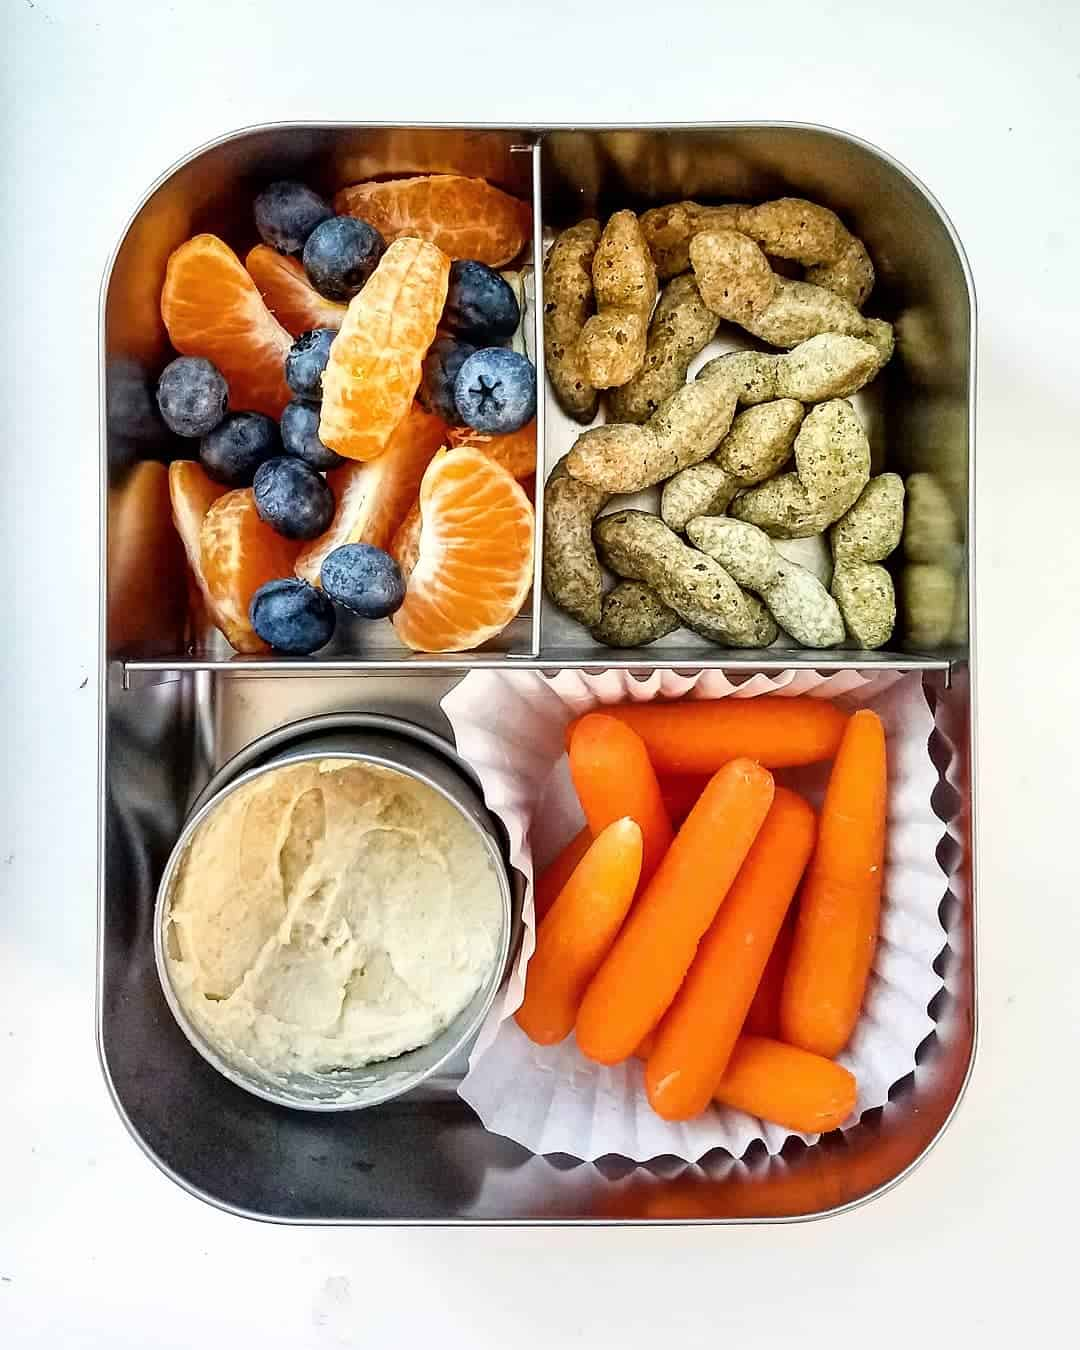 carrots with hummus, orange slices with blueberries and Edamame crackers